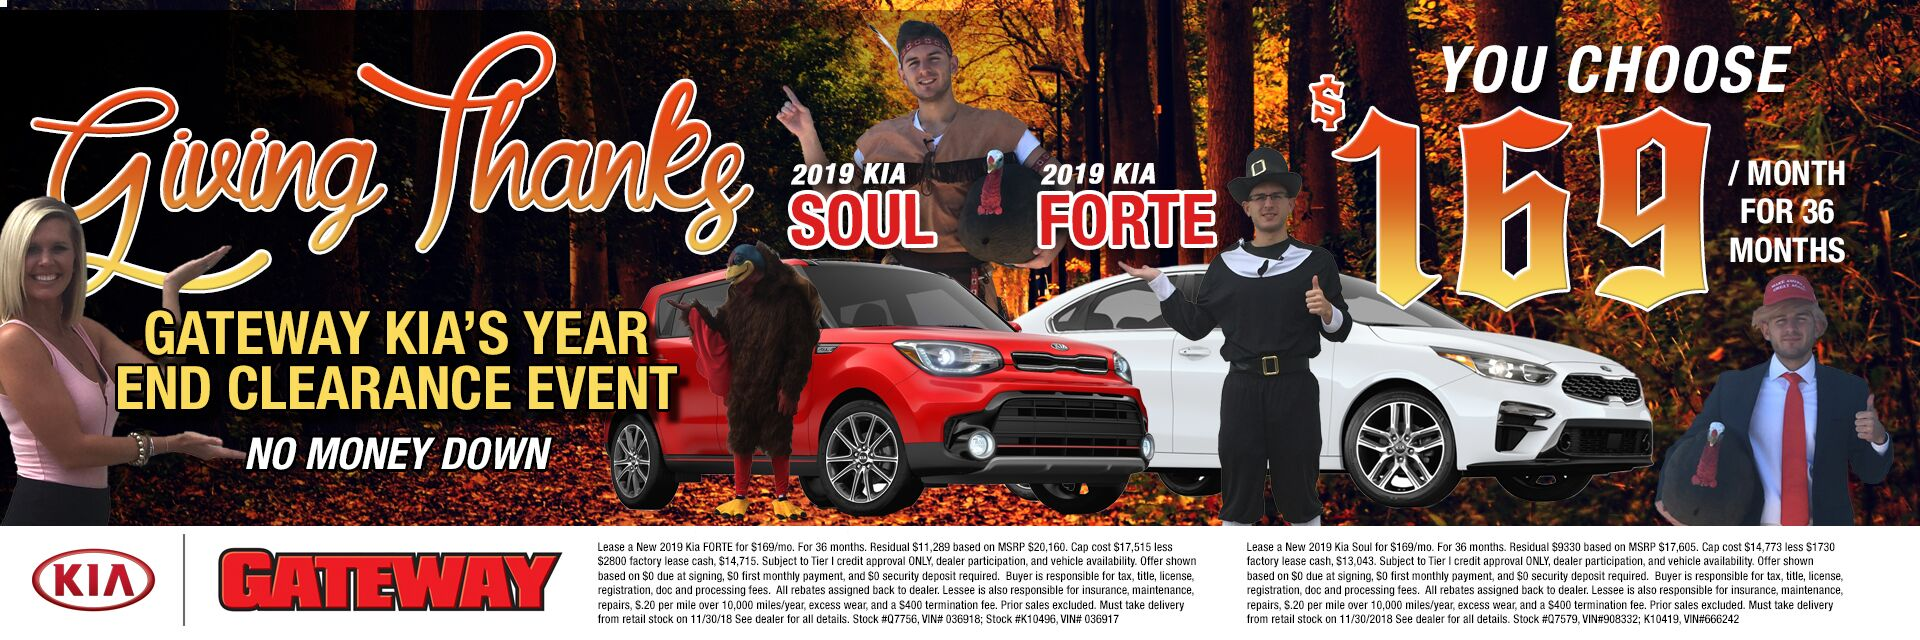 Giving Thanks For Forte and Soul $169/mo